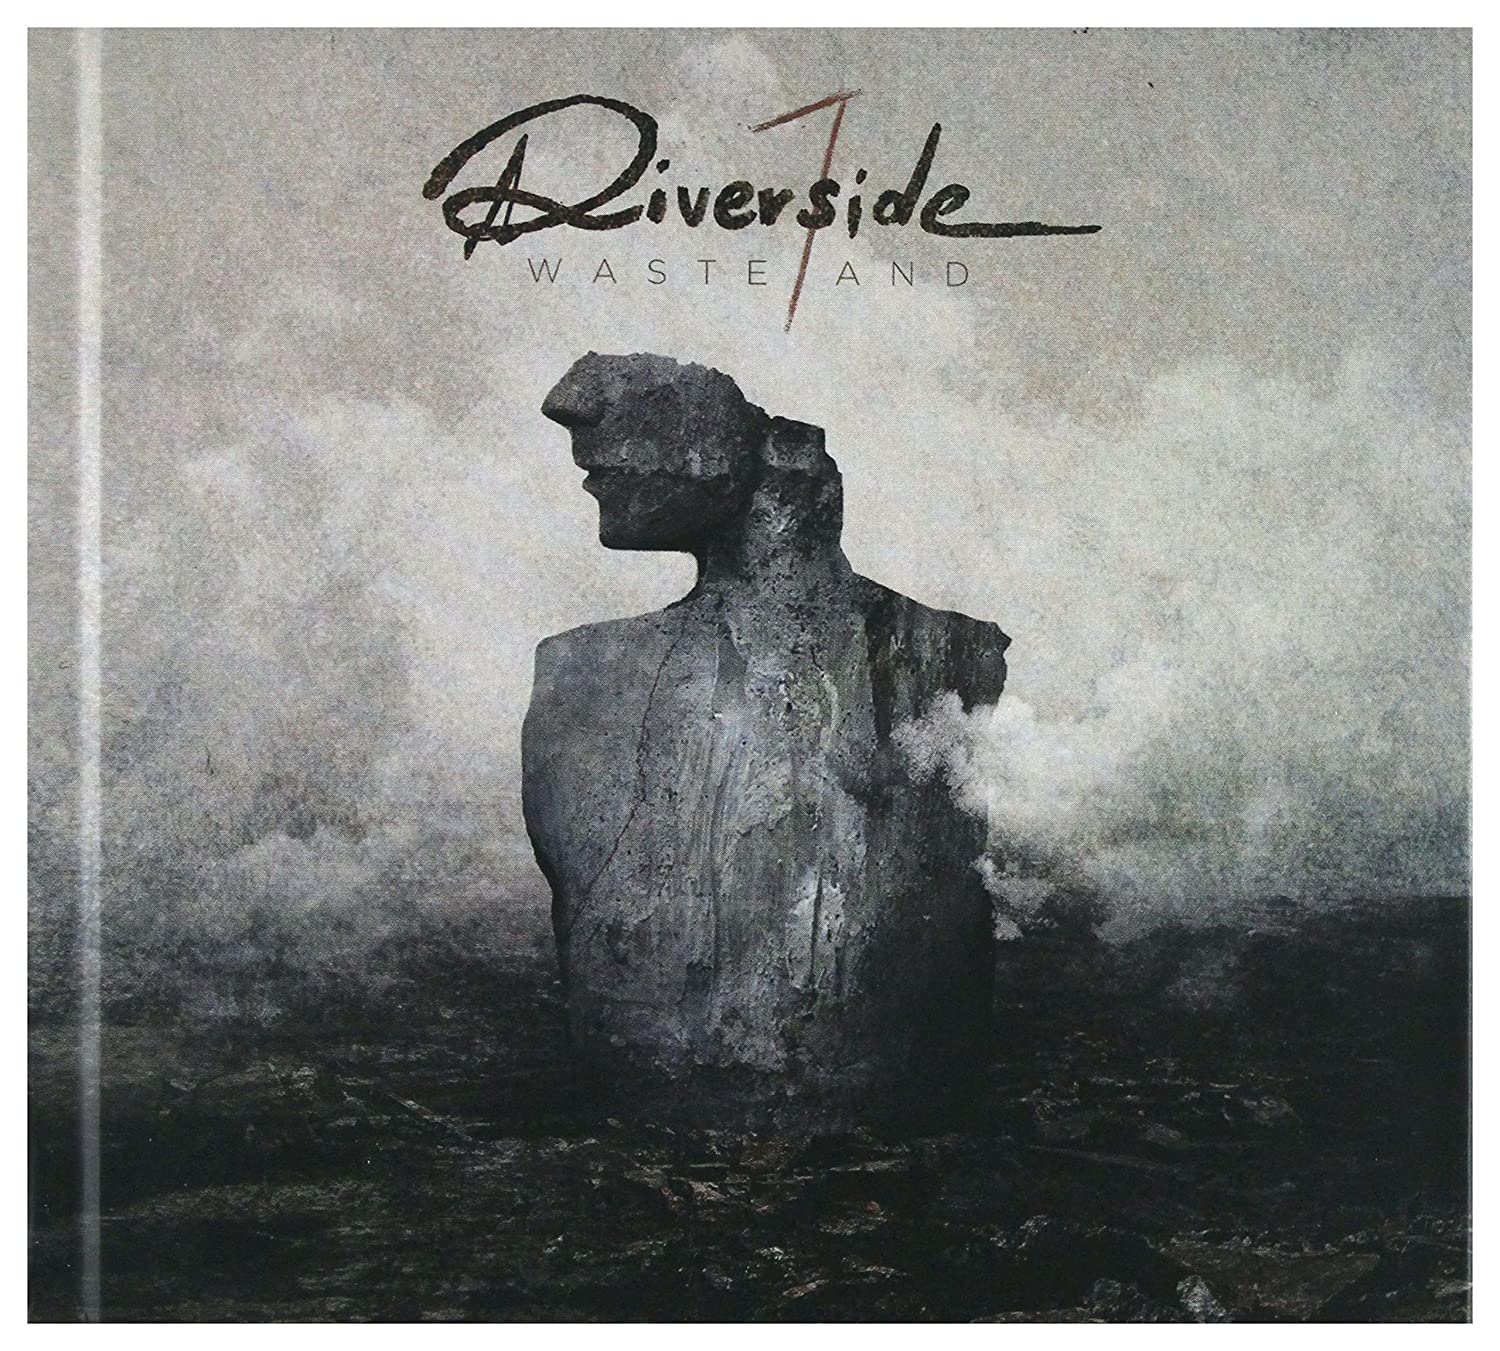 Riverside Wasteland Deluxe Cd By Riverside Amazoncouk Music